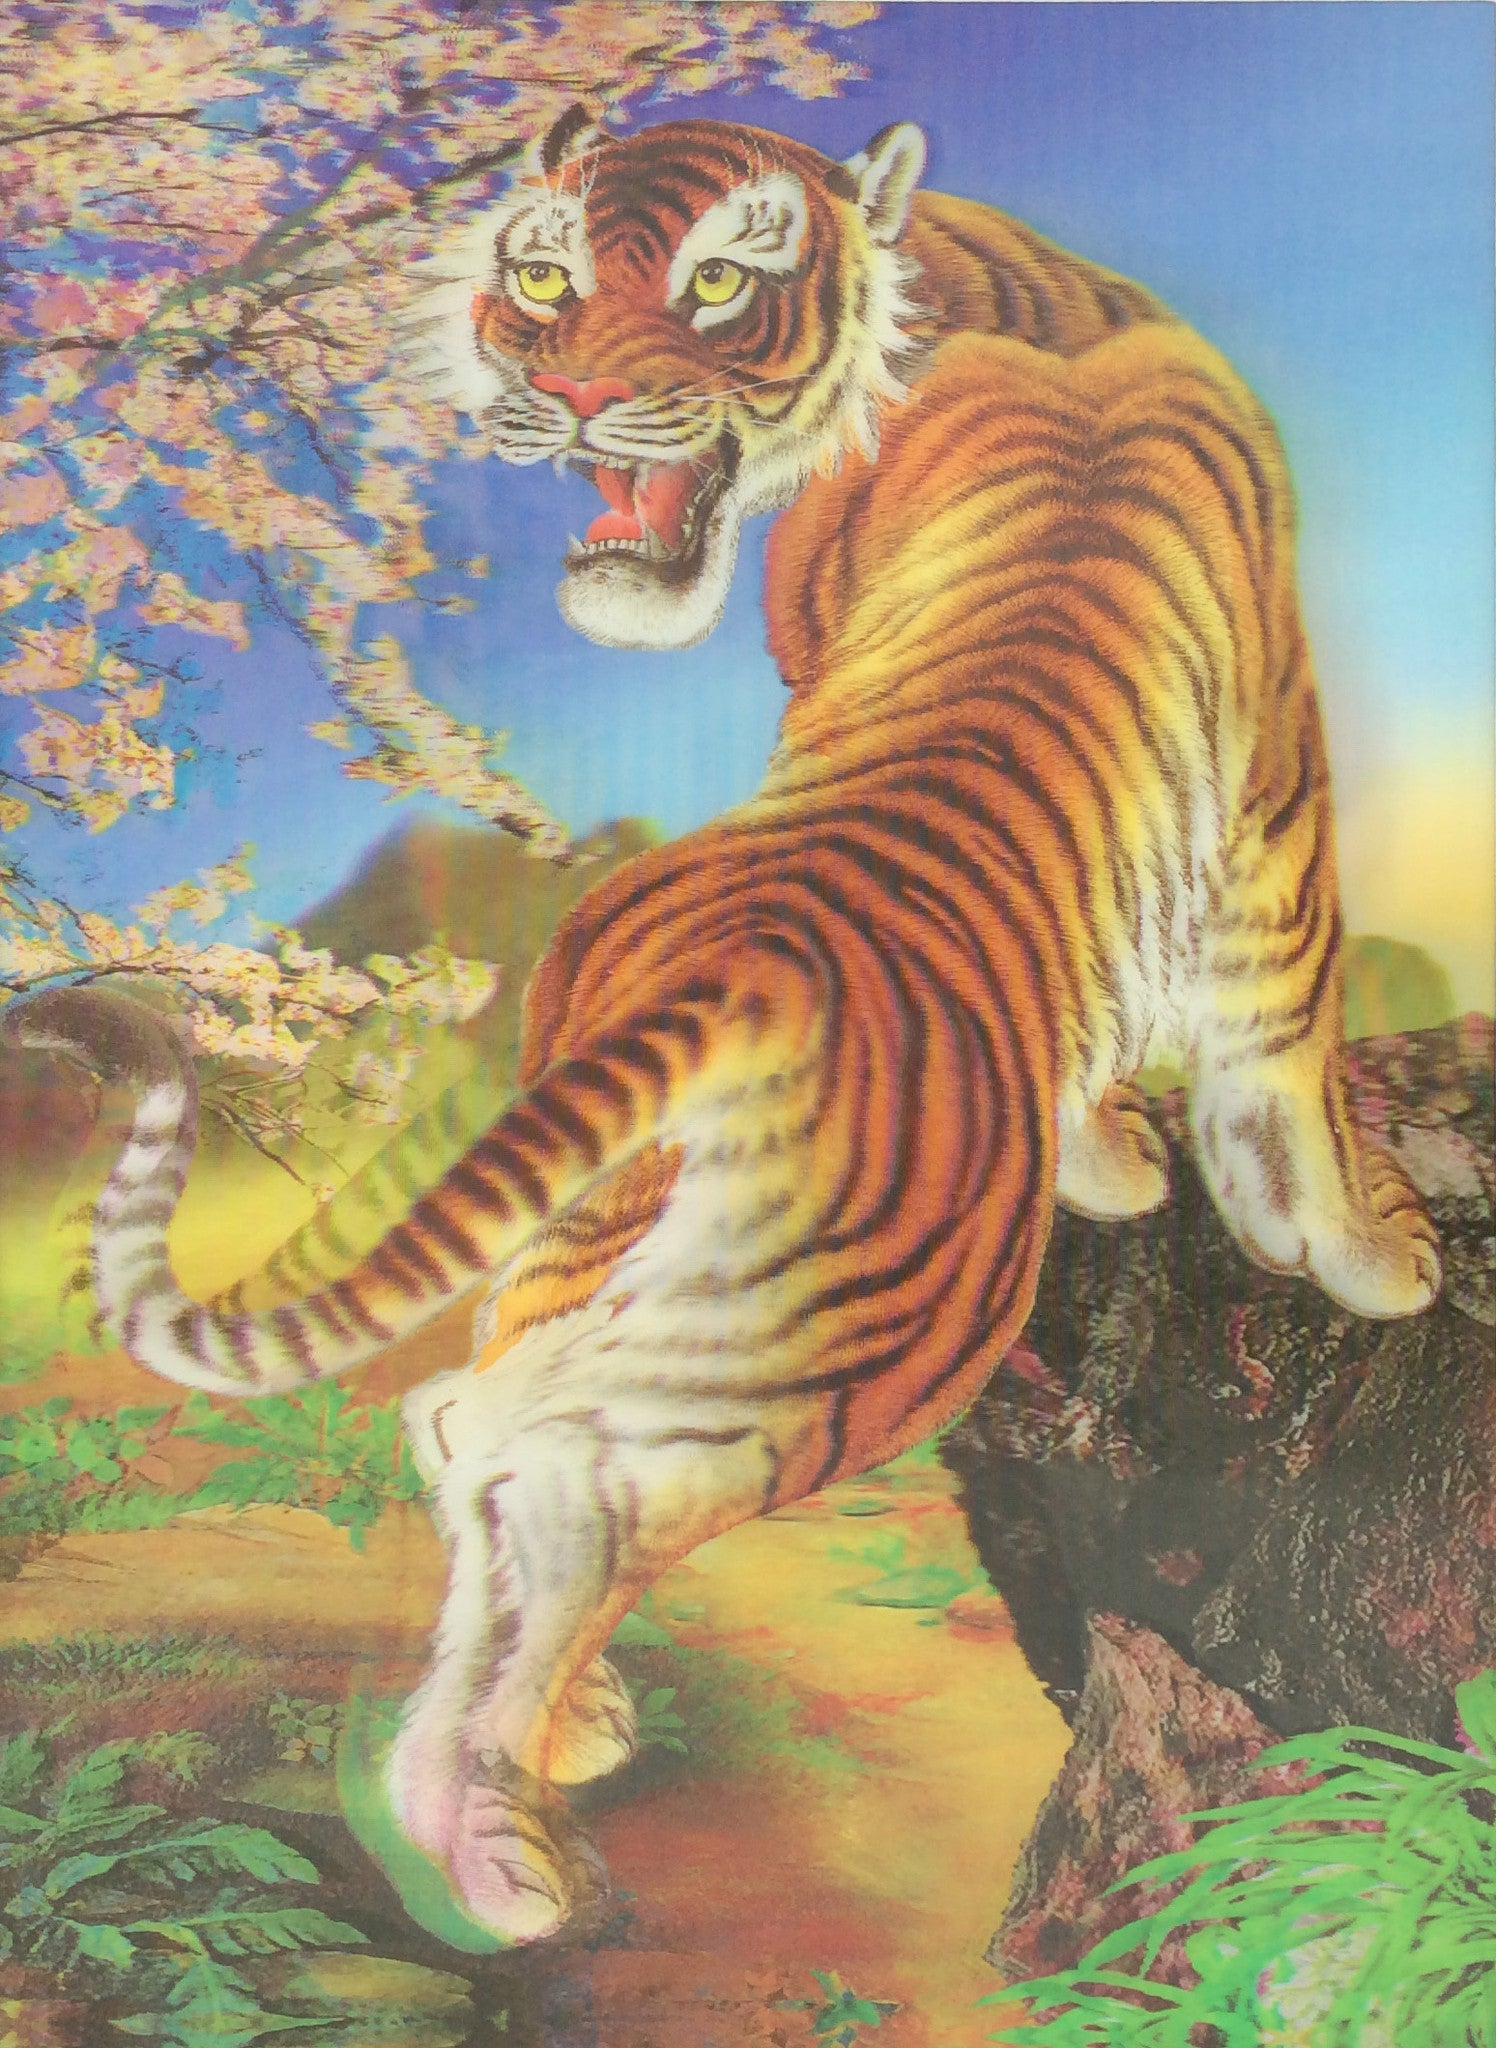 tigers lions leopards 3d picturesfree shipping! | 3dddpictures